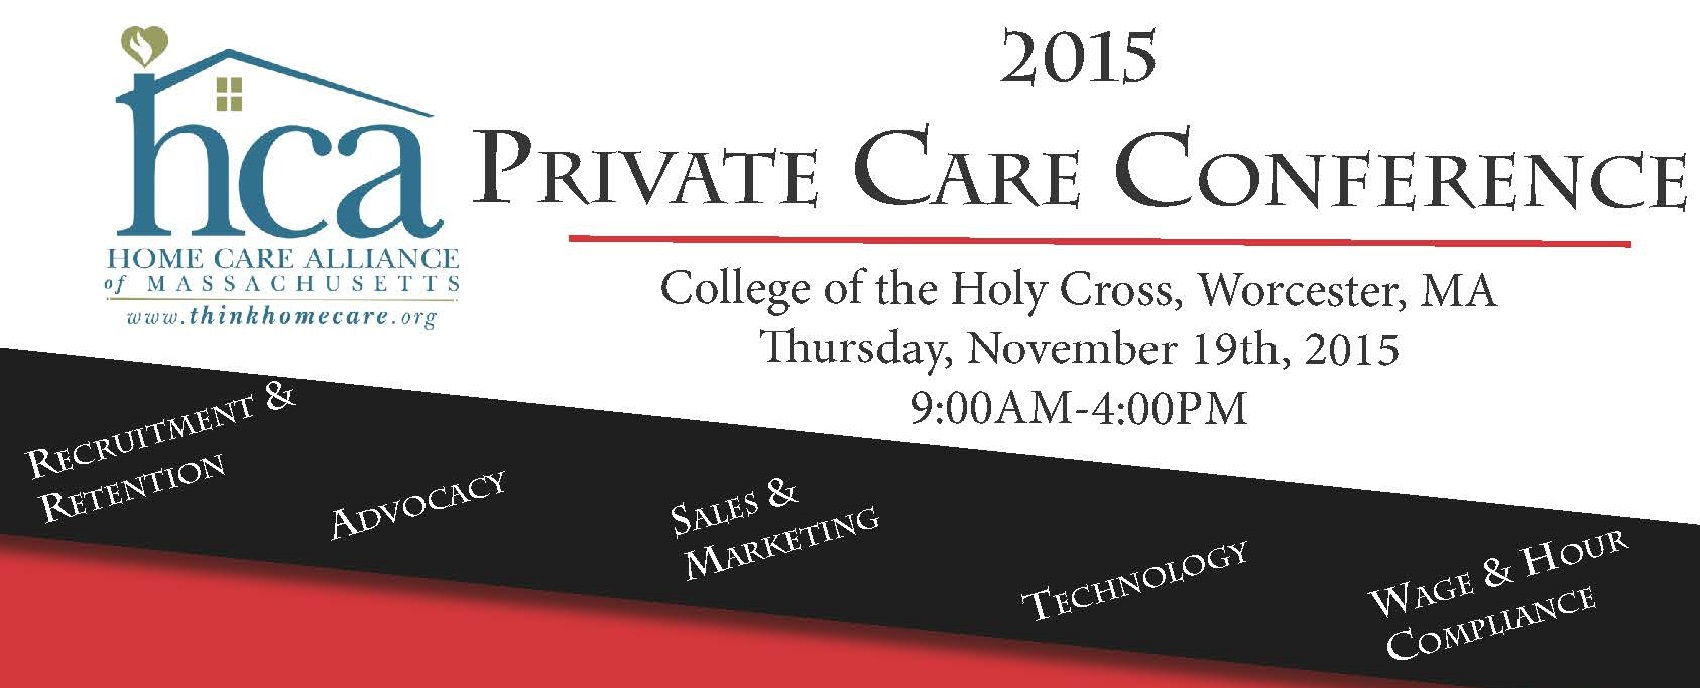 Private Care Conference top